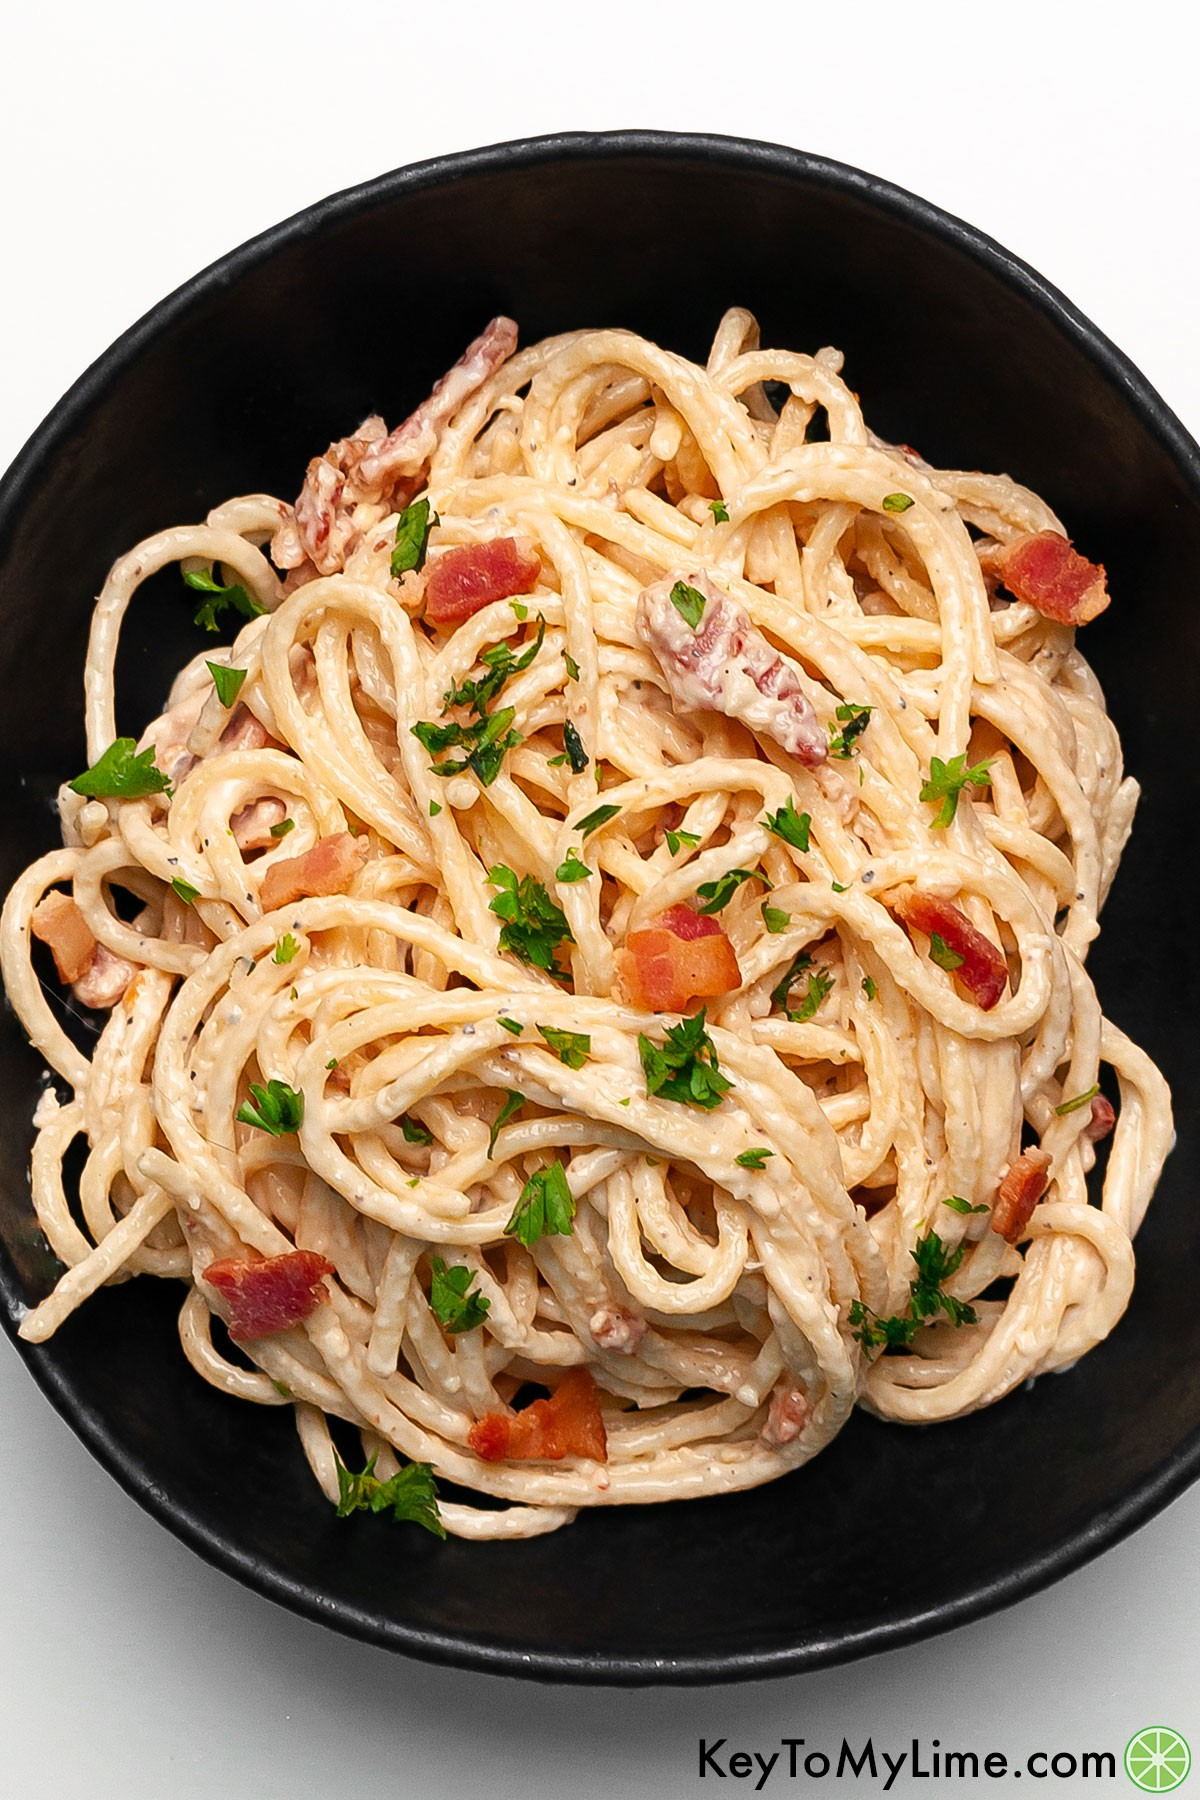 An overhead image of a bowl of cream cheese pasta with bacon and parsley.